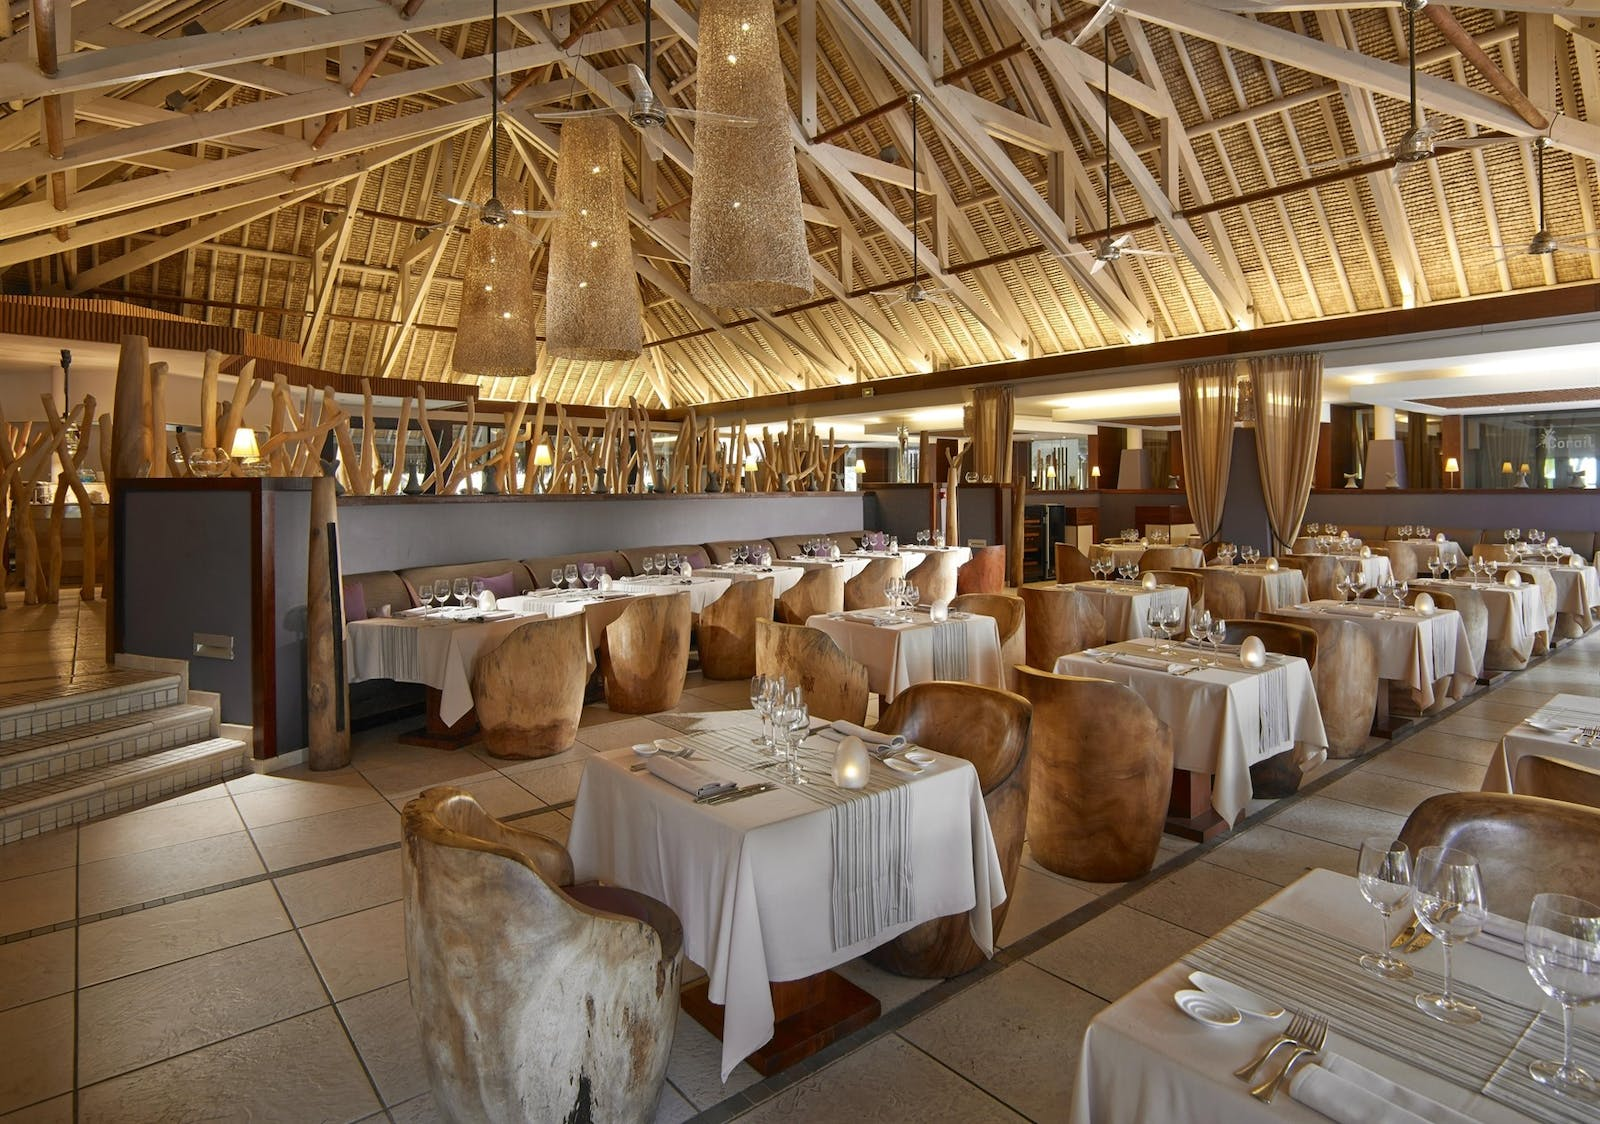 Reef Restaurant at InterContinental Bora Bora Resort & Thalasso Spa, French Polynesia